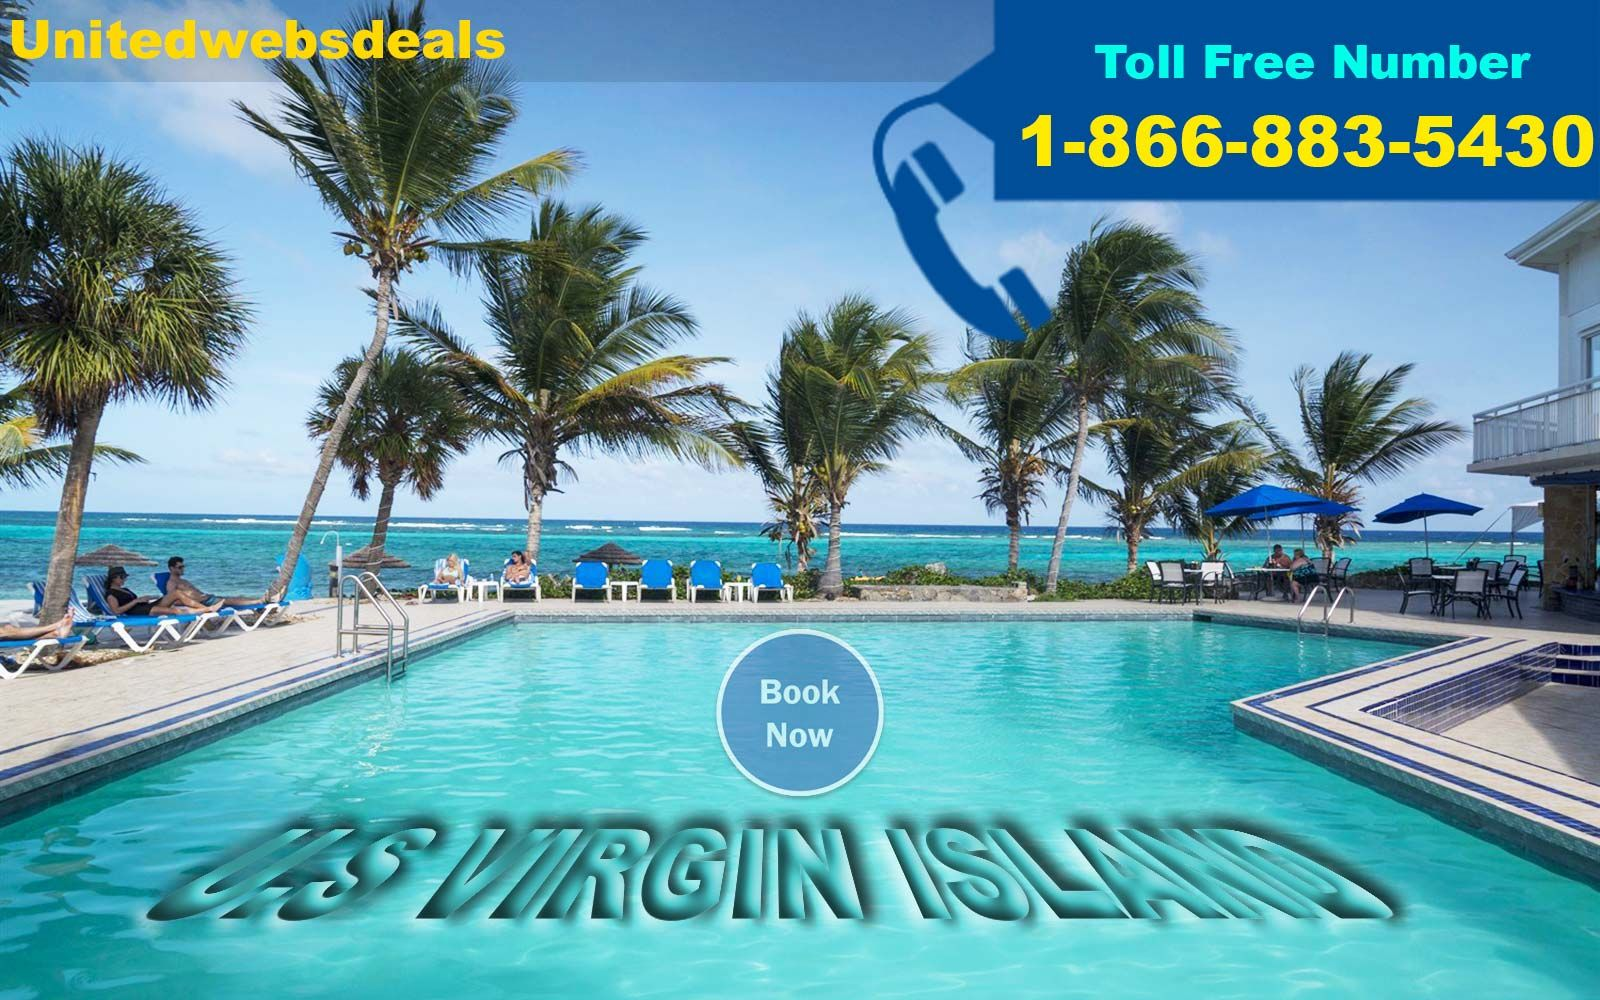 Visit Us Virgin Islands by booking your flights on